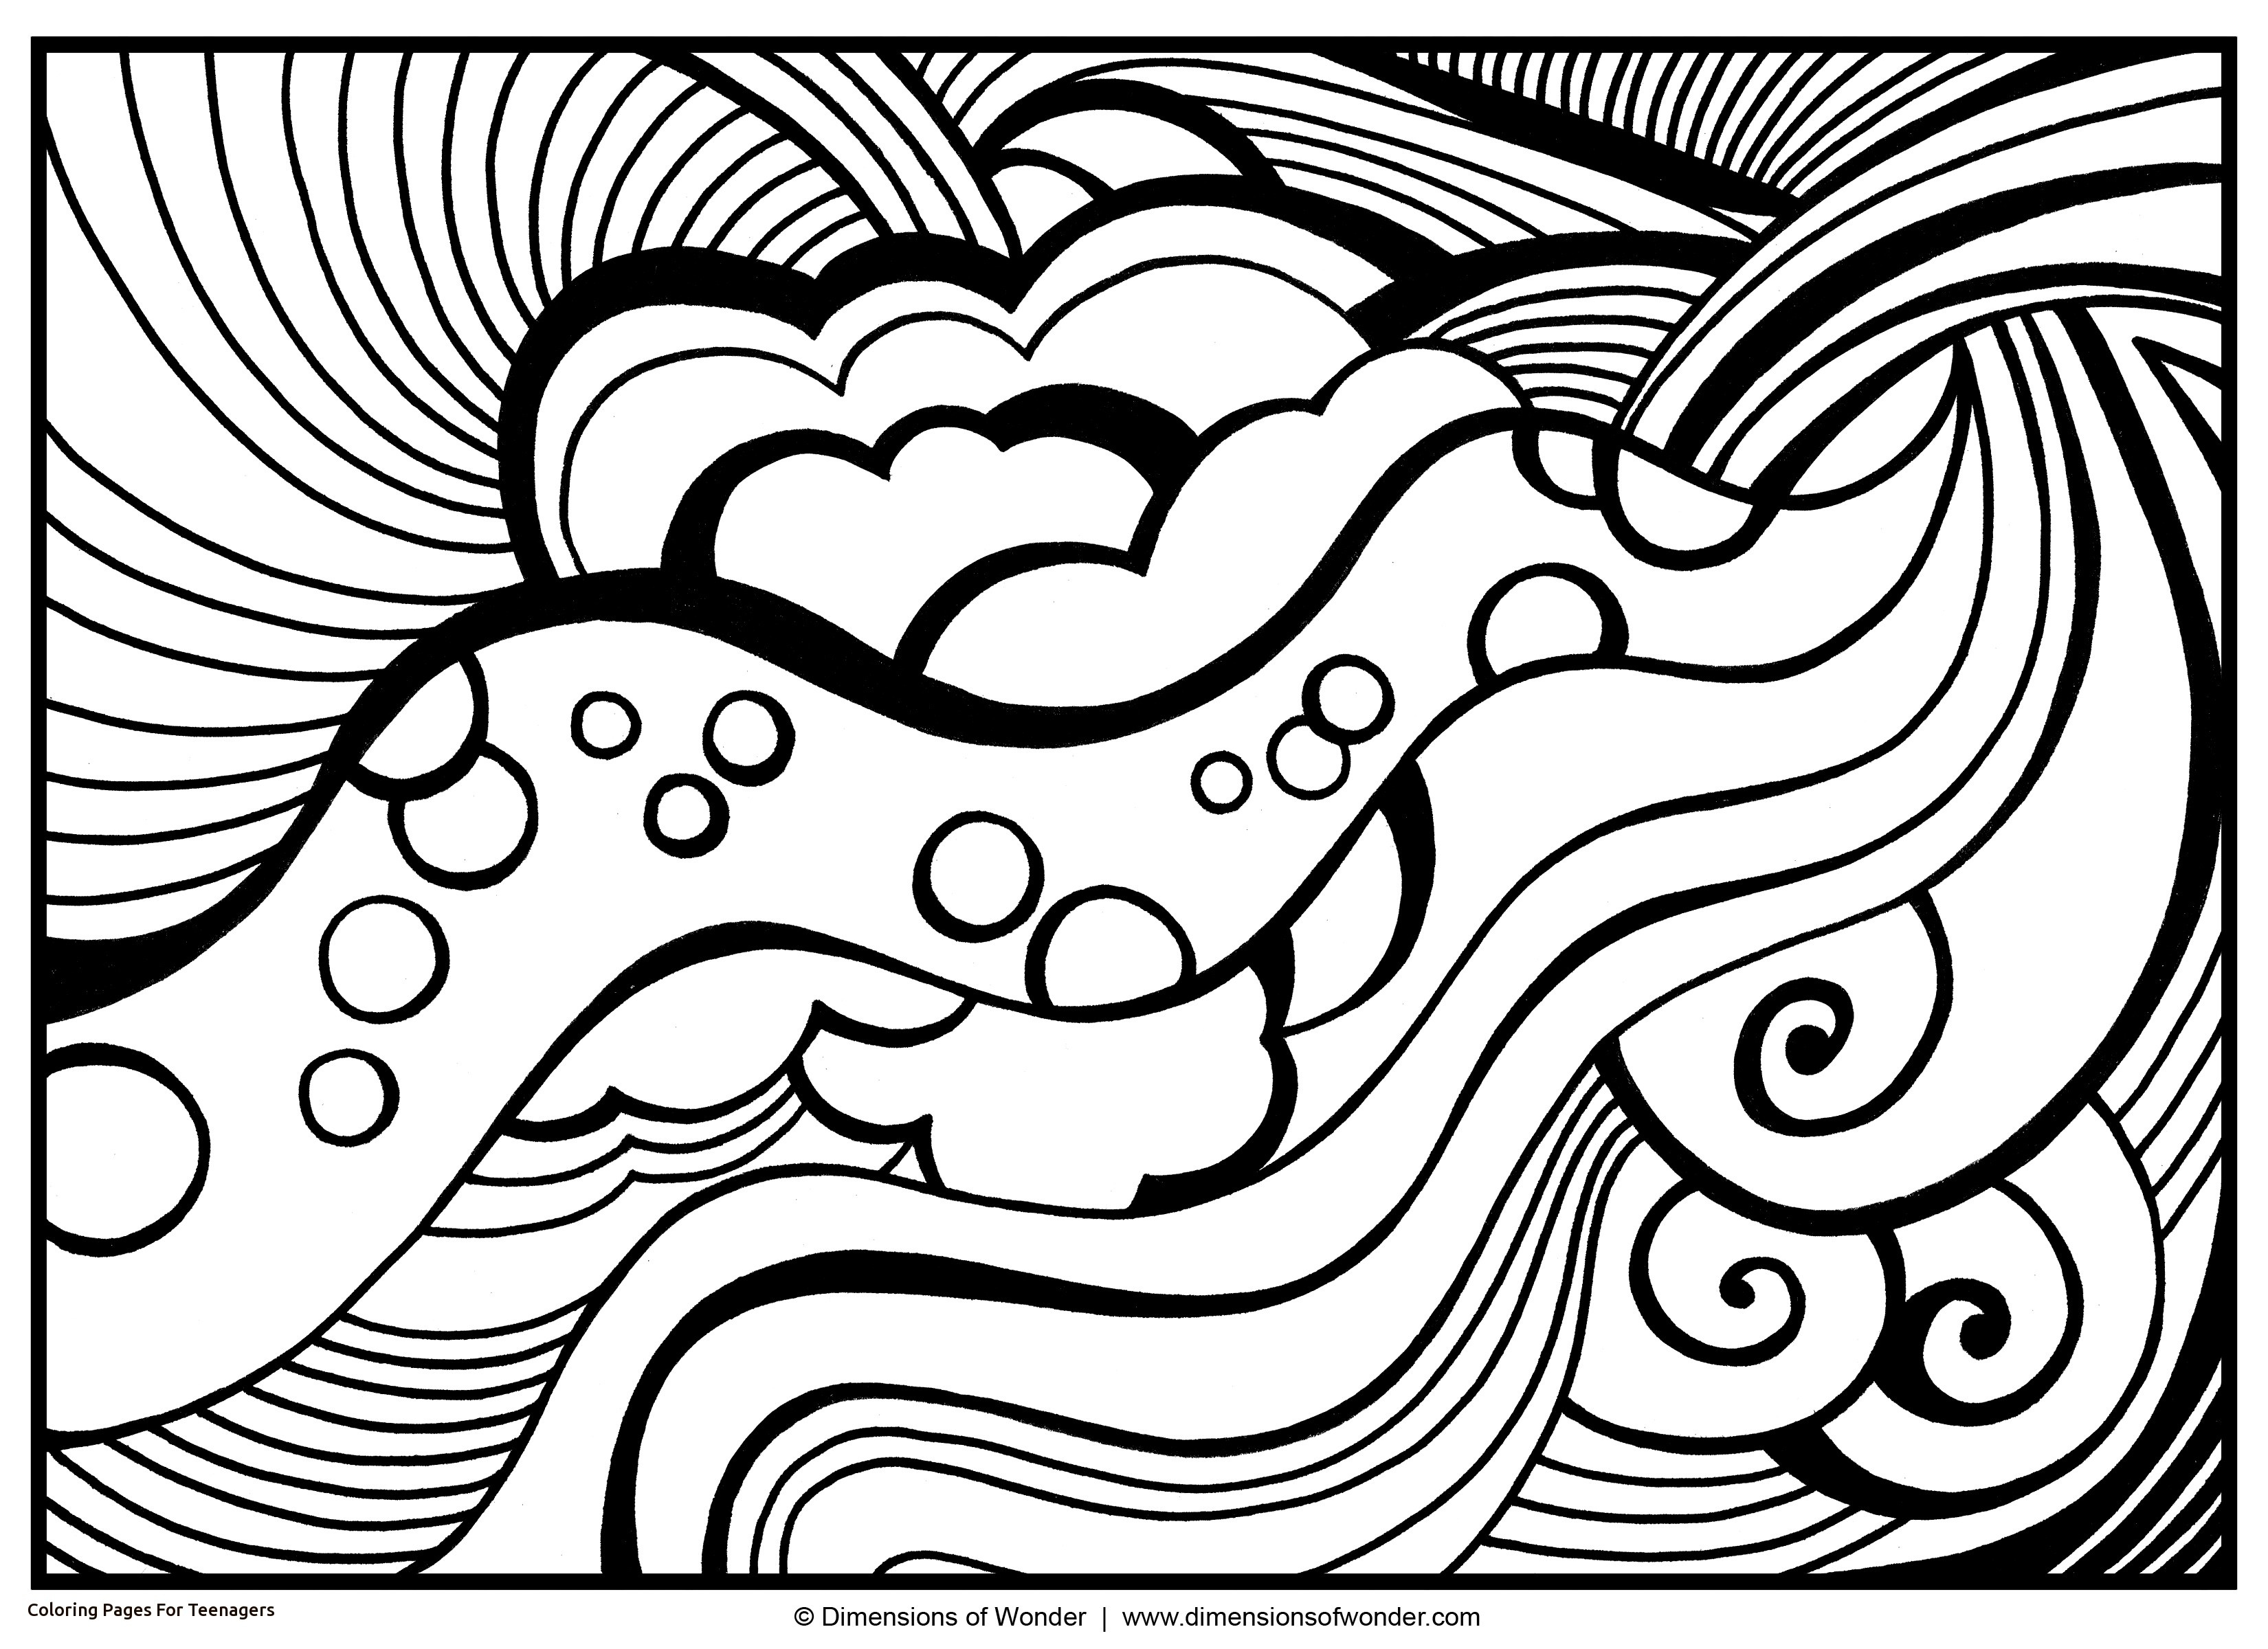 Coloring Pages For Teens | Free Download Best Coloring Pages For - Free Printable Coloring Pages For Teens